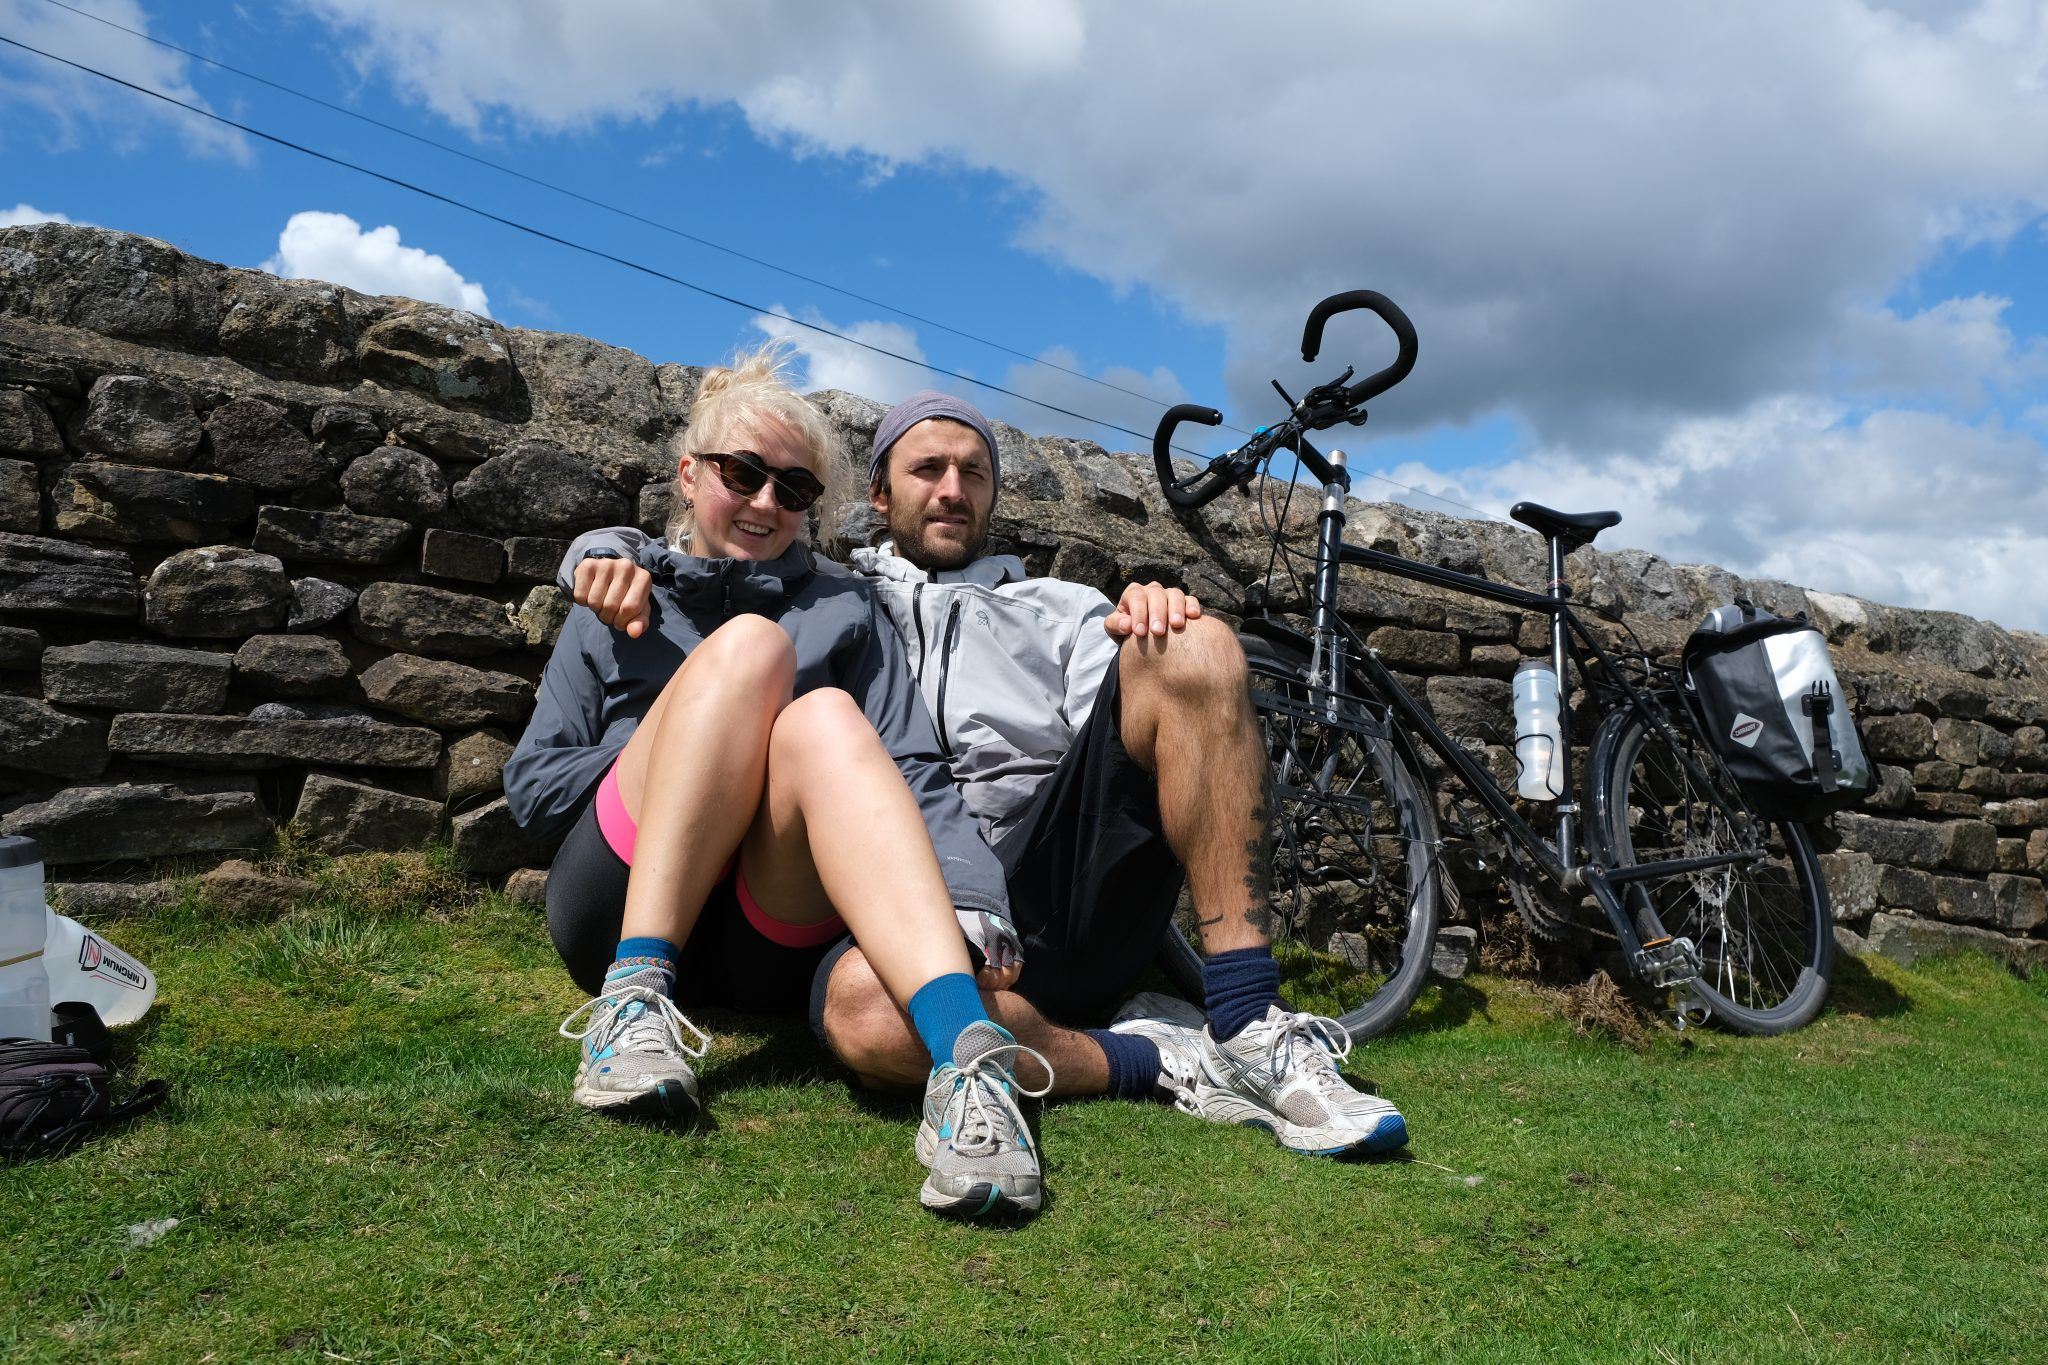 Couple on cycling adventure